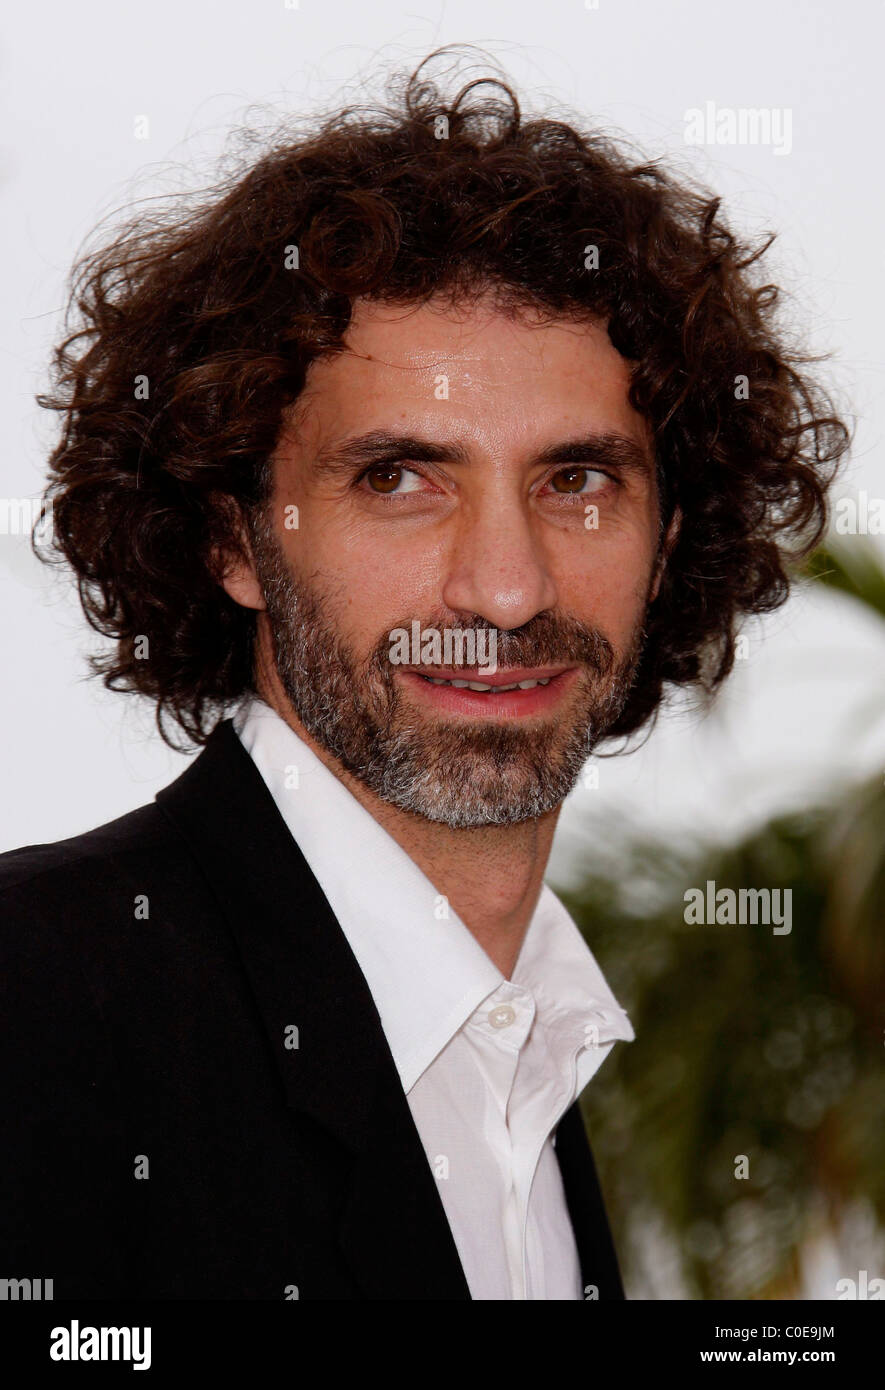 43465f40a5d Rabih Mroue The 2008 Cannes Film Festival - Day 4  Je Veux Voir  - Photocall  Cannes